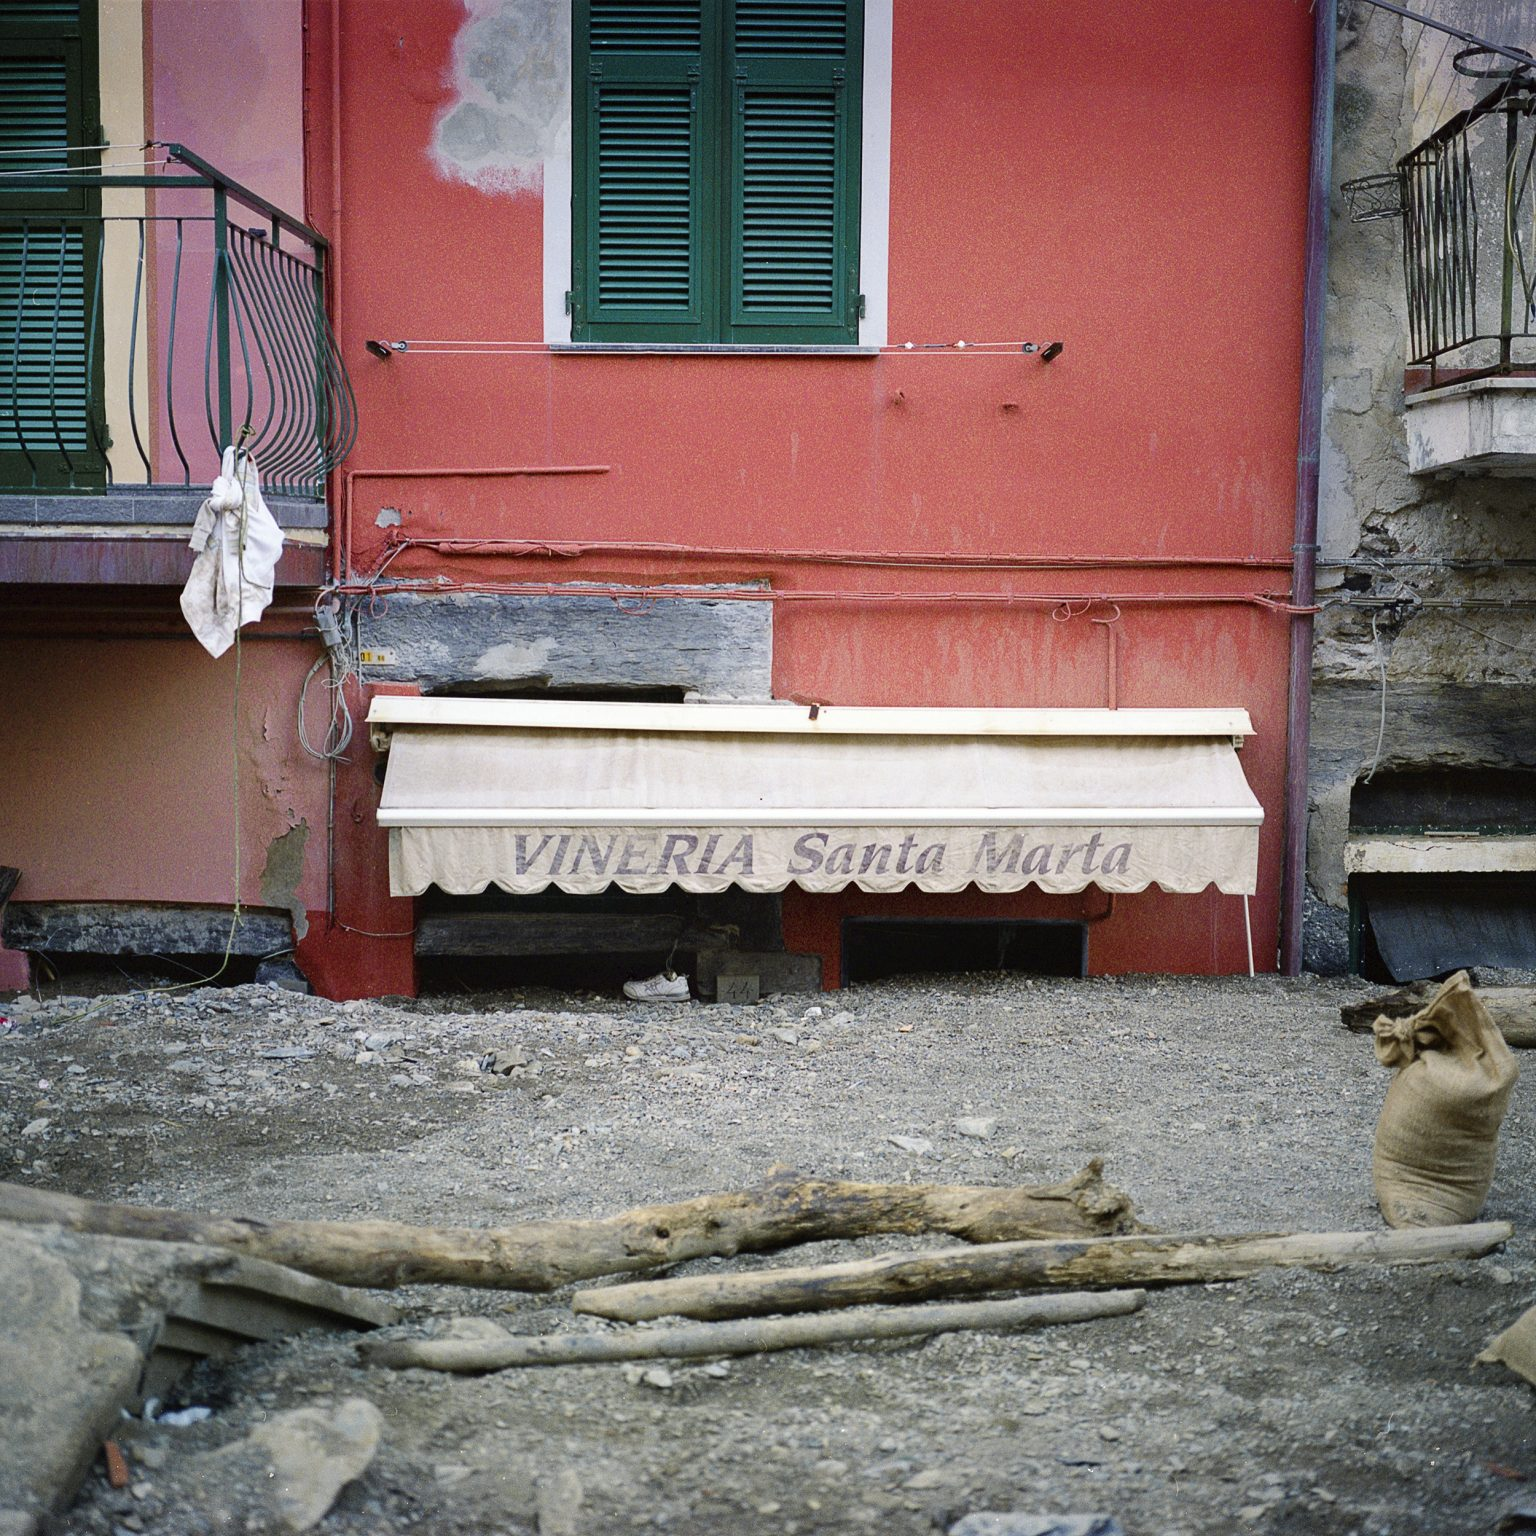 Vernazza, November 2011. After the intense rain the town was hit by a severe flood that caused much damage to the buildings and economic activities. A shop completely submerged by mud.